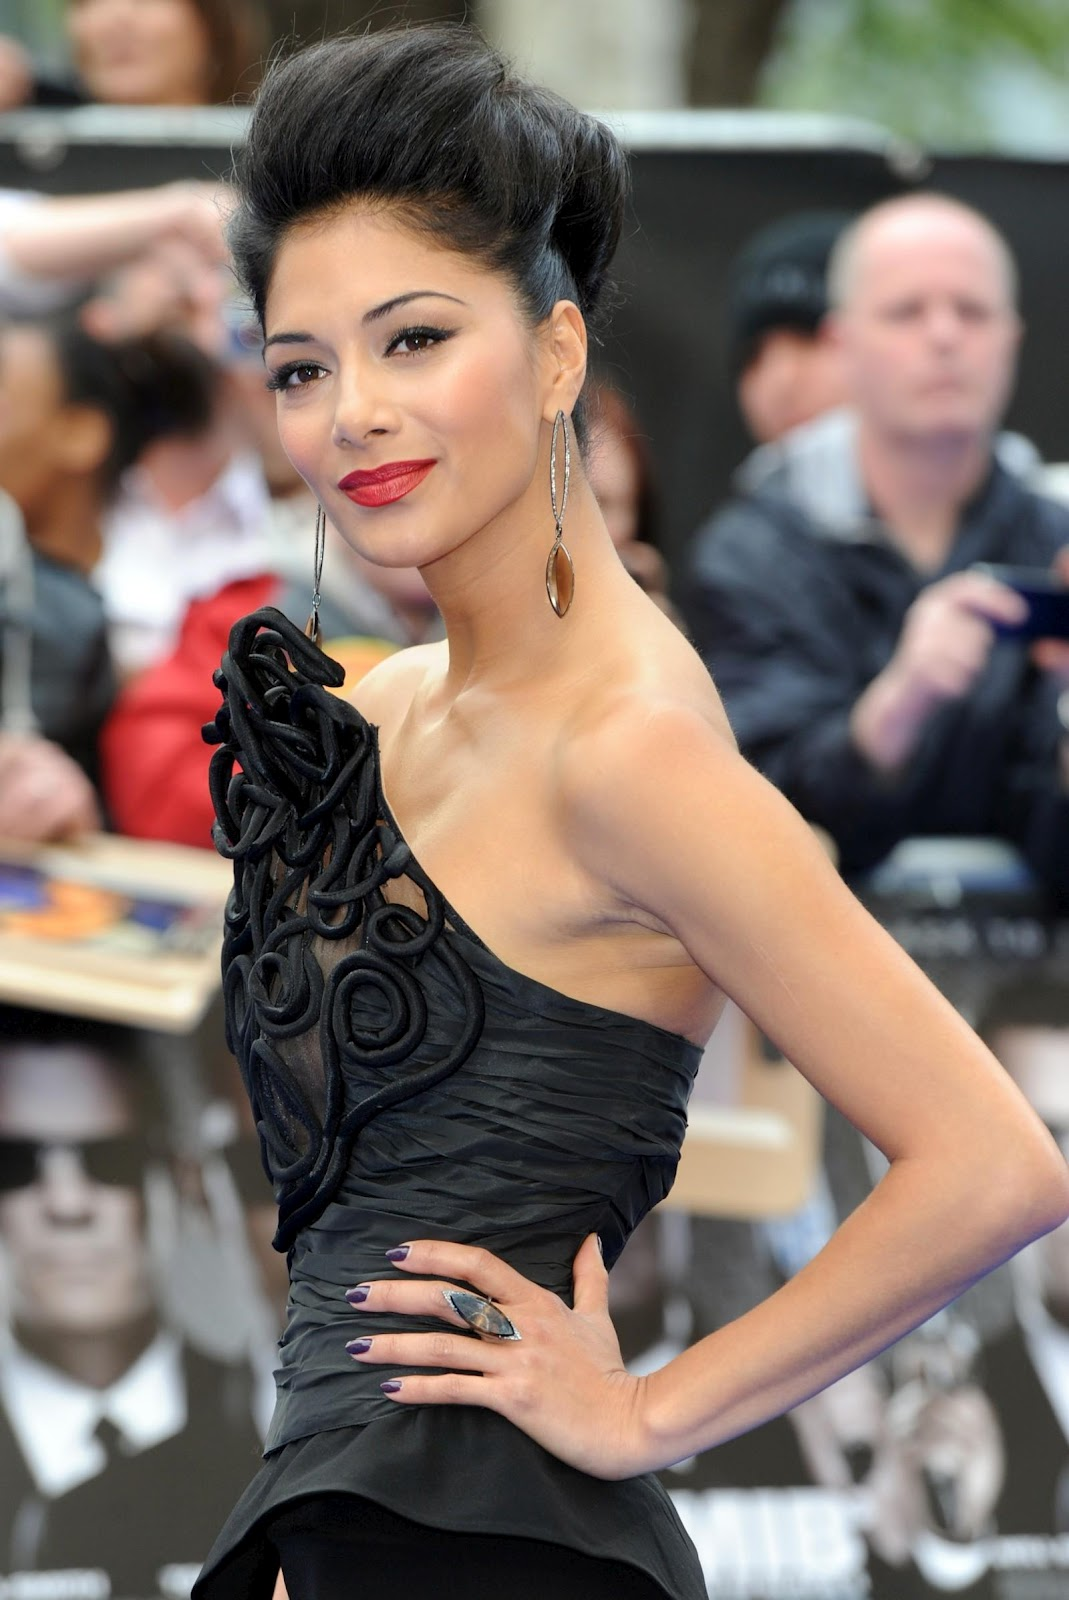 http://4.bp.blogspot.com/-4I265qlGWak/T7Zh9yB0pyI/AAAAAAAARlU/c9-U0YI64QI/s1600/Nicole_Scherzinger_MEN_IN_BLACK_3_GIRL_WALLPAPERS_07.jpg